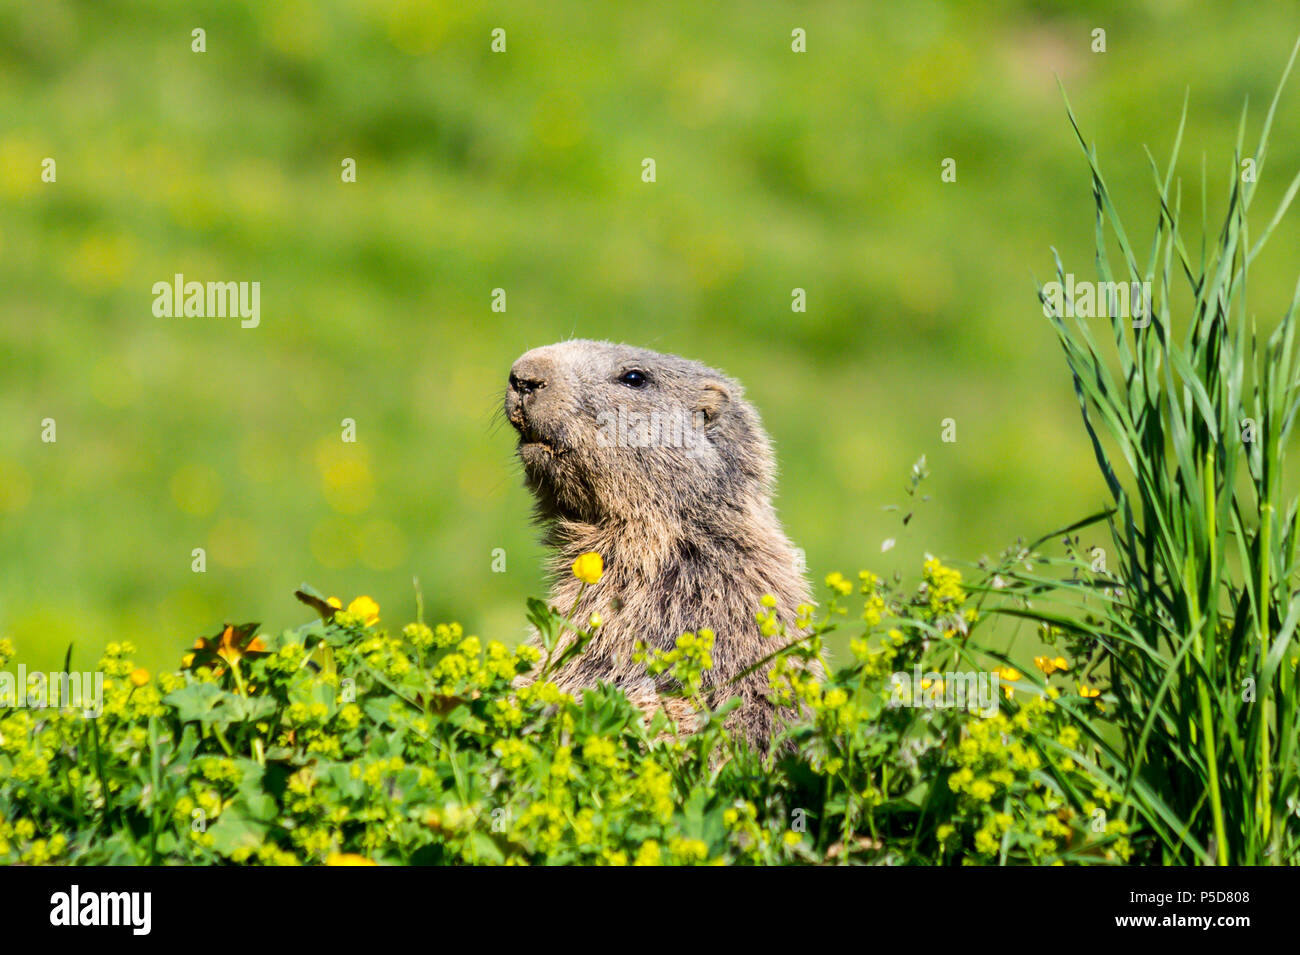 Curious alpine marmot, also known as groundhog, hiding behind bushes and watching for enemies in the European Alps - Stock Image